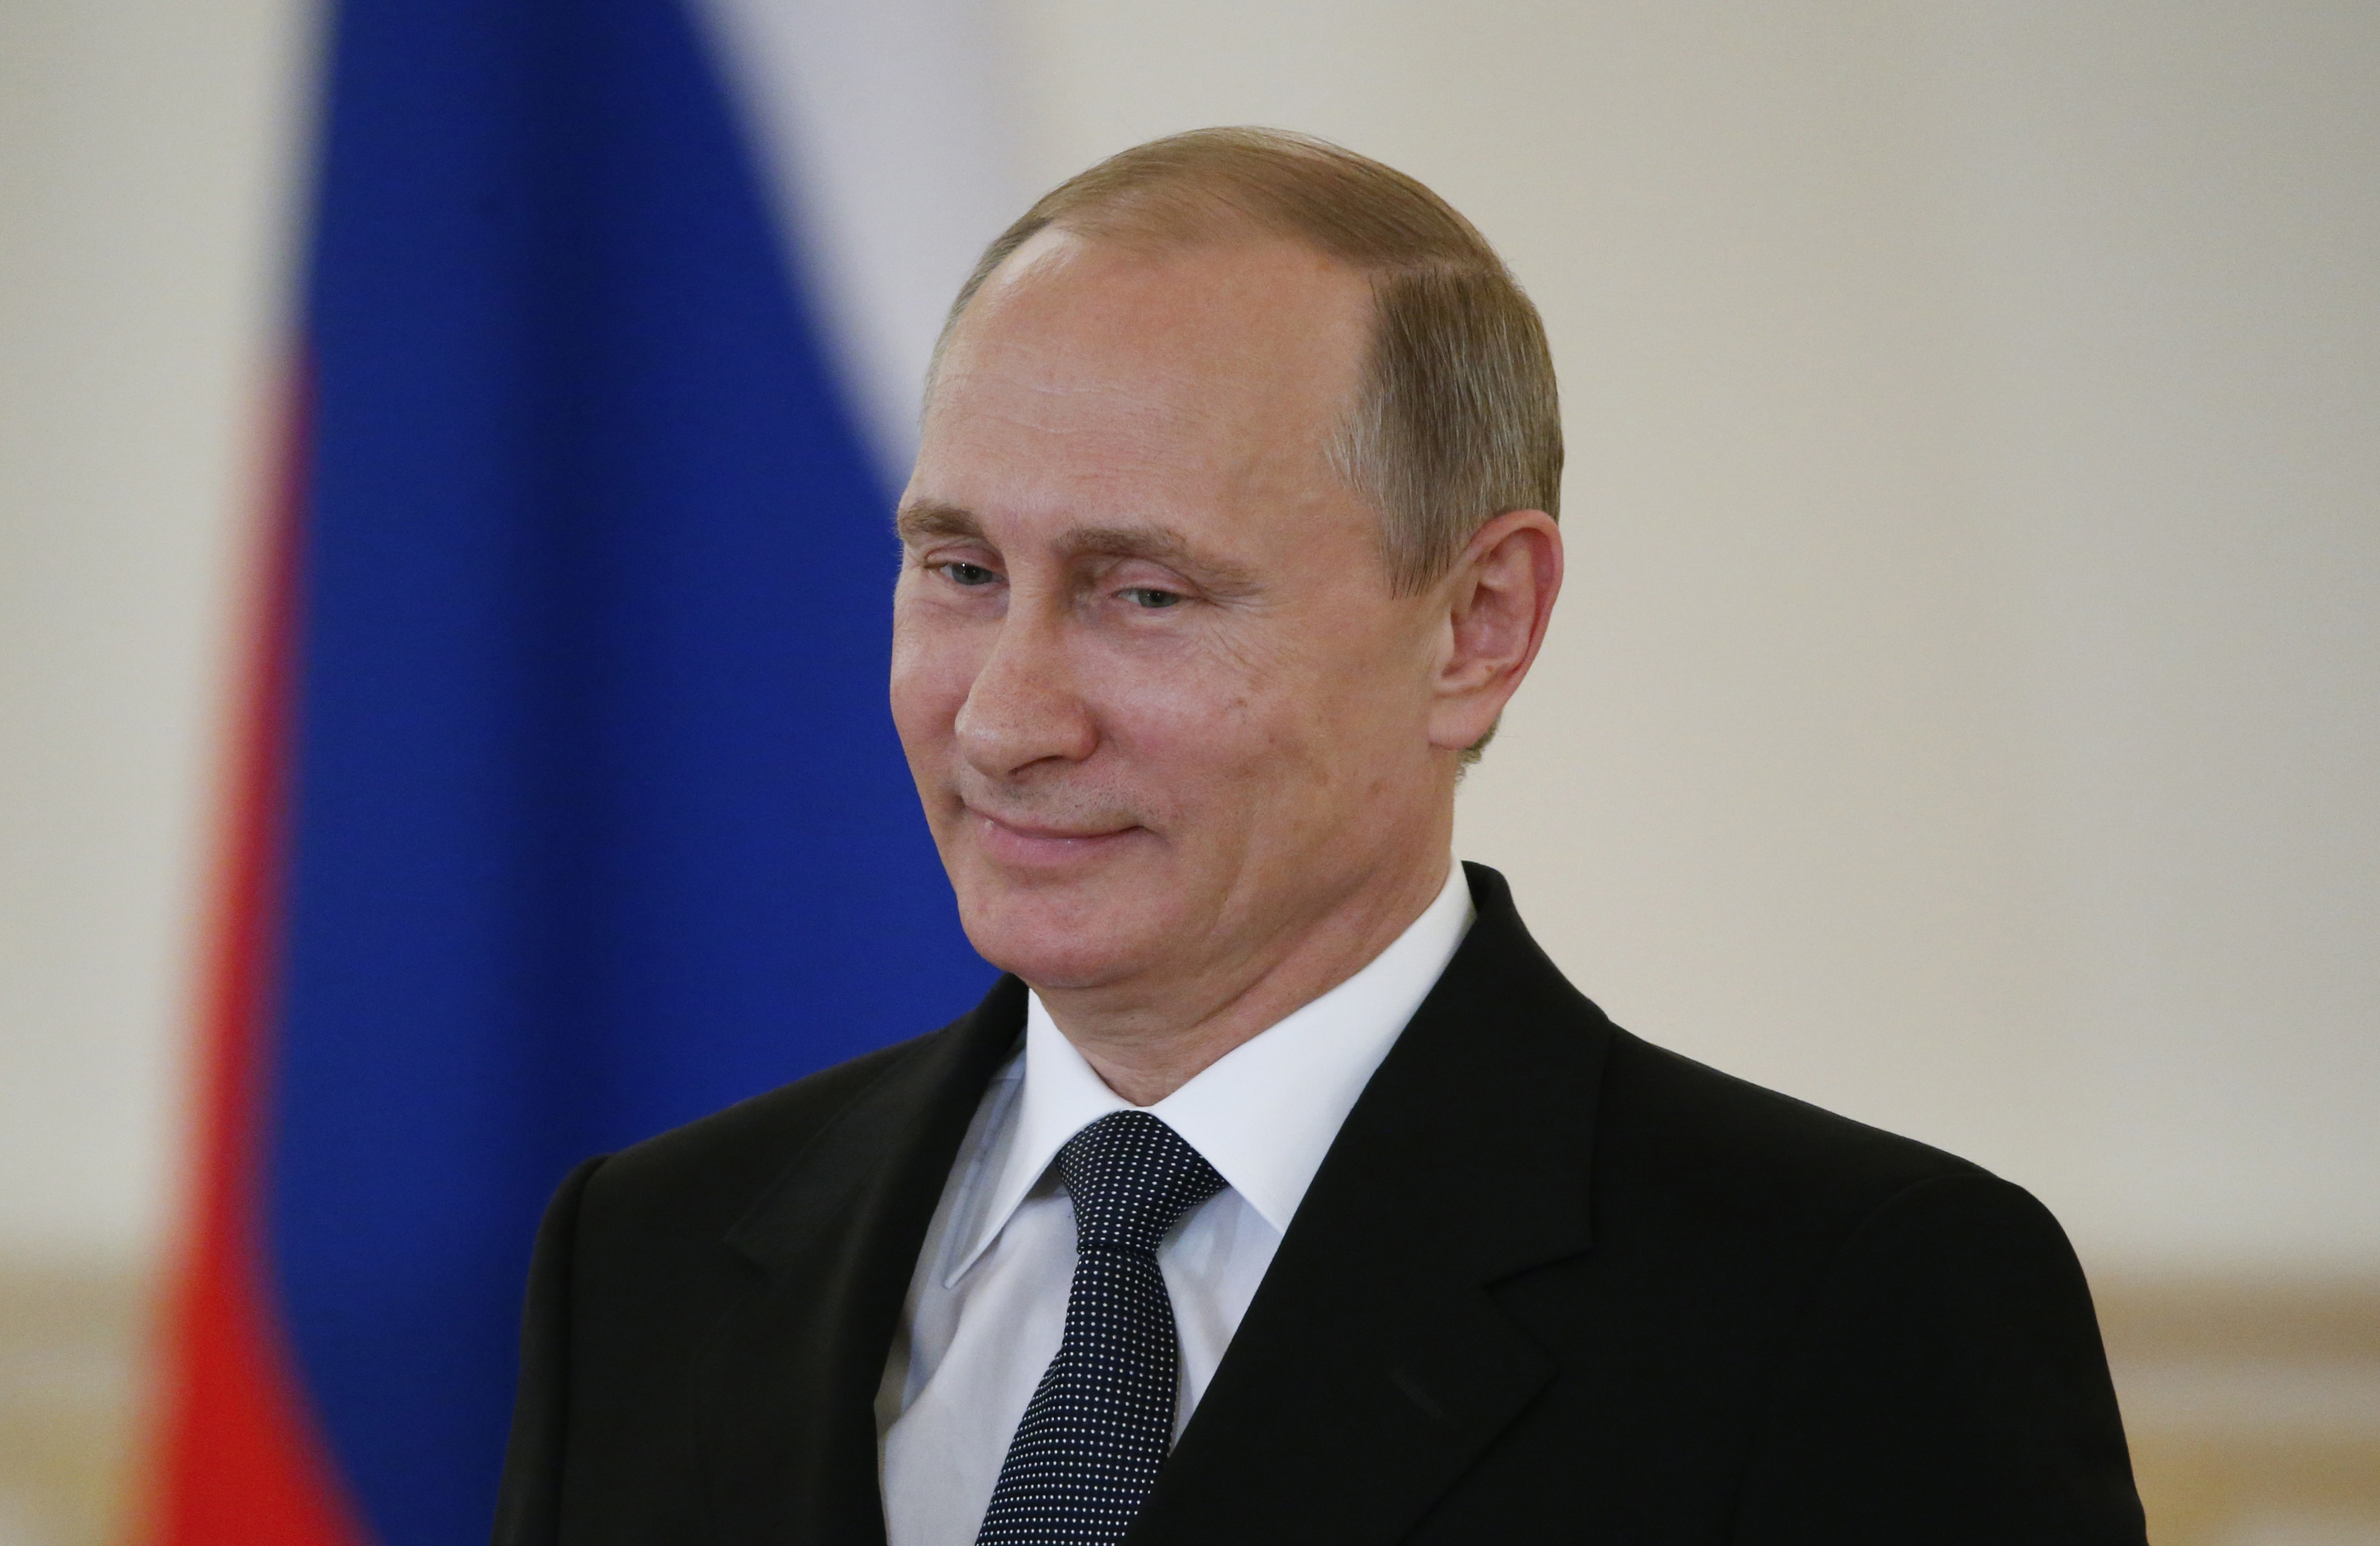 In this May 28, 2015 file photo, Russian President Vladimir Putin attends a ceremony in the Kremlin in Moscow.